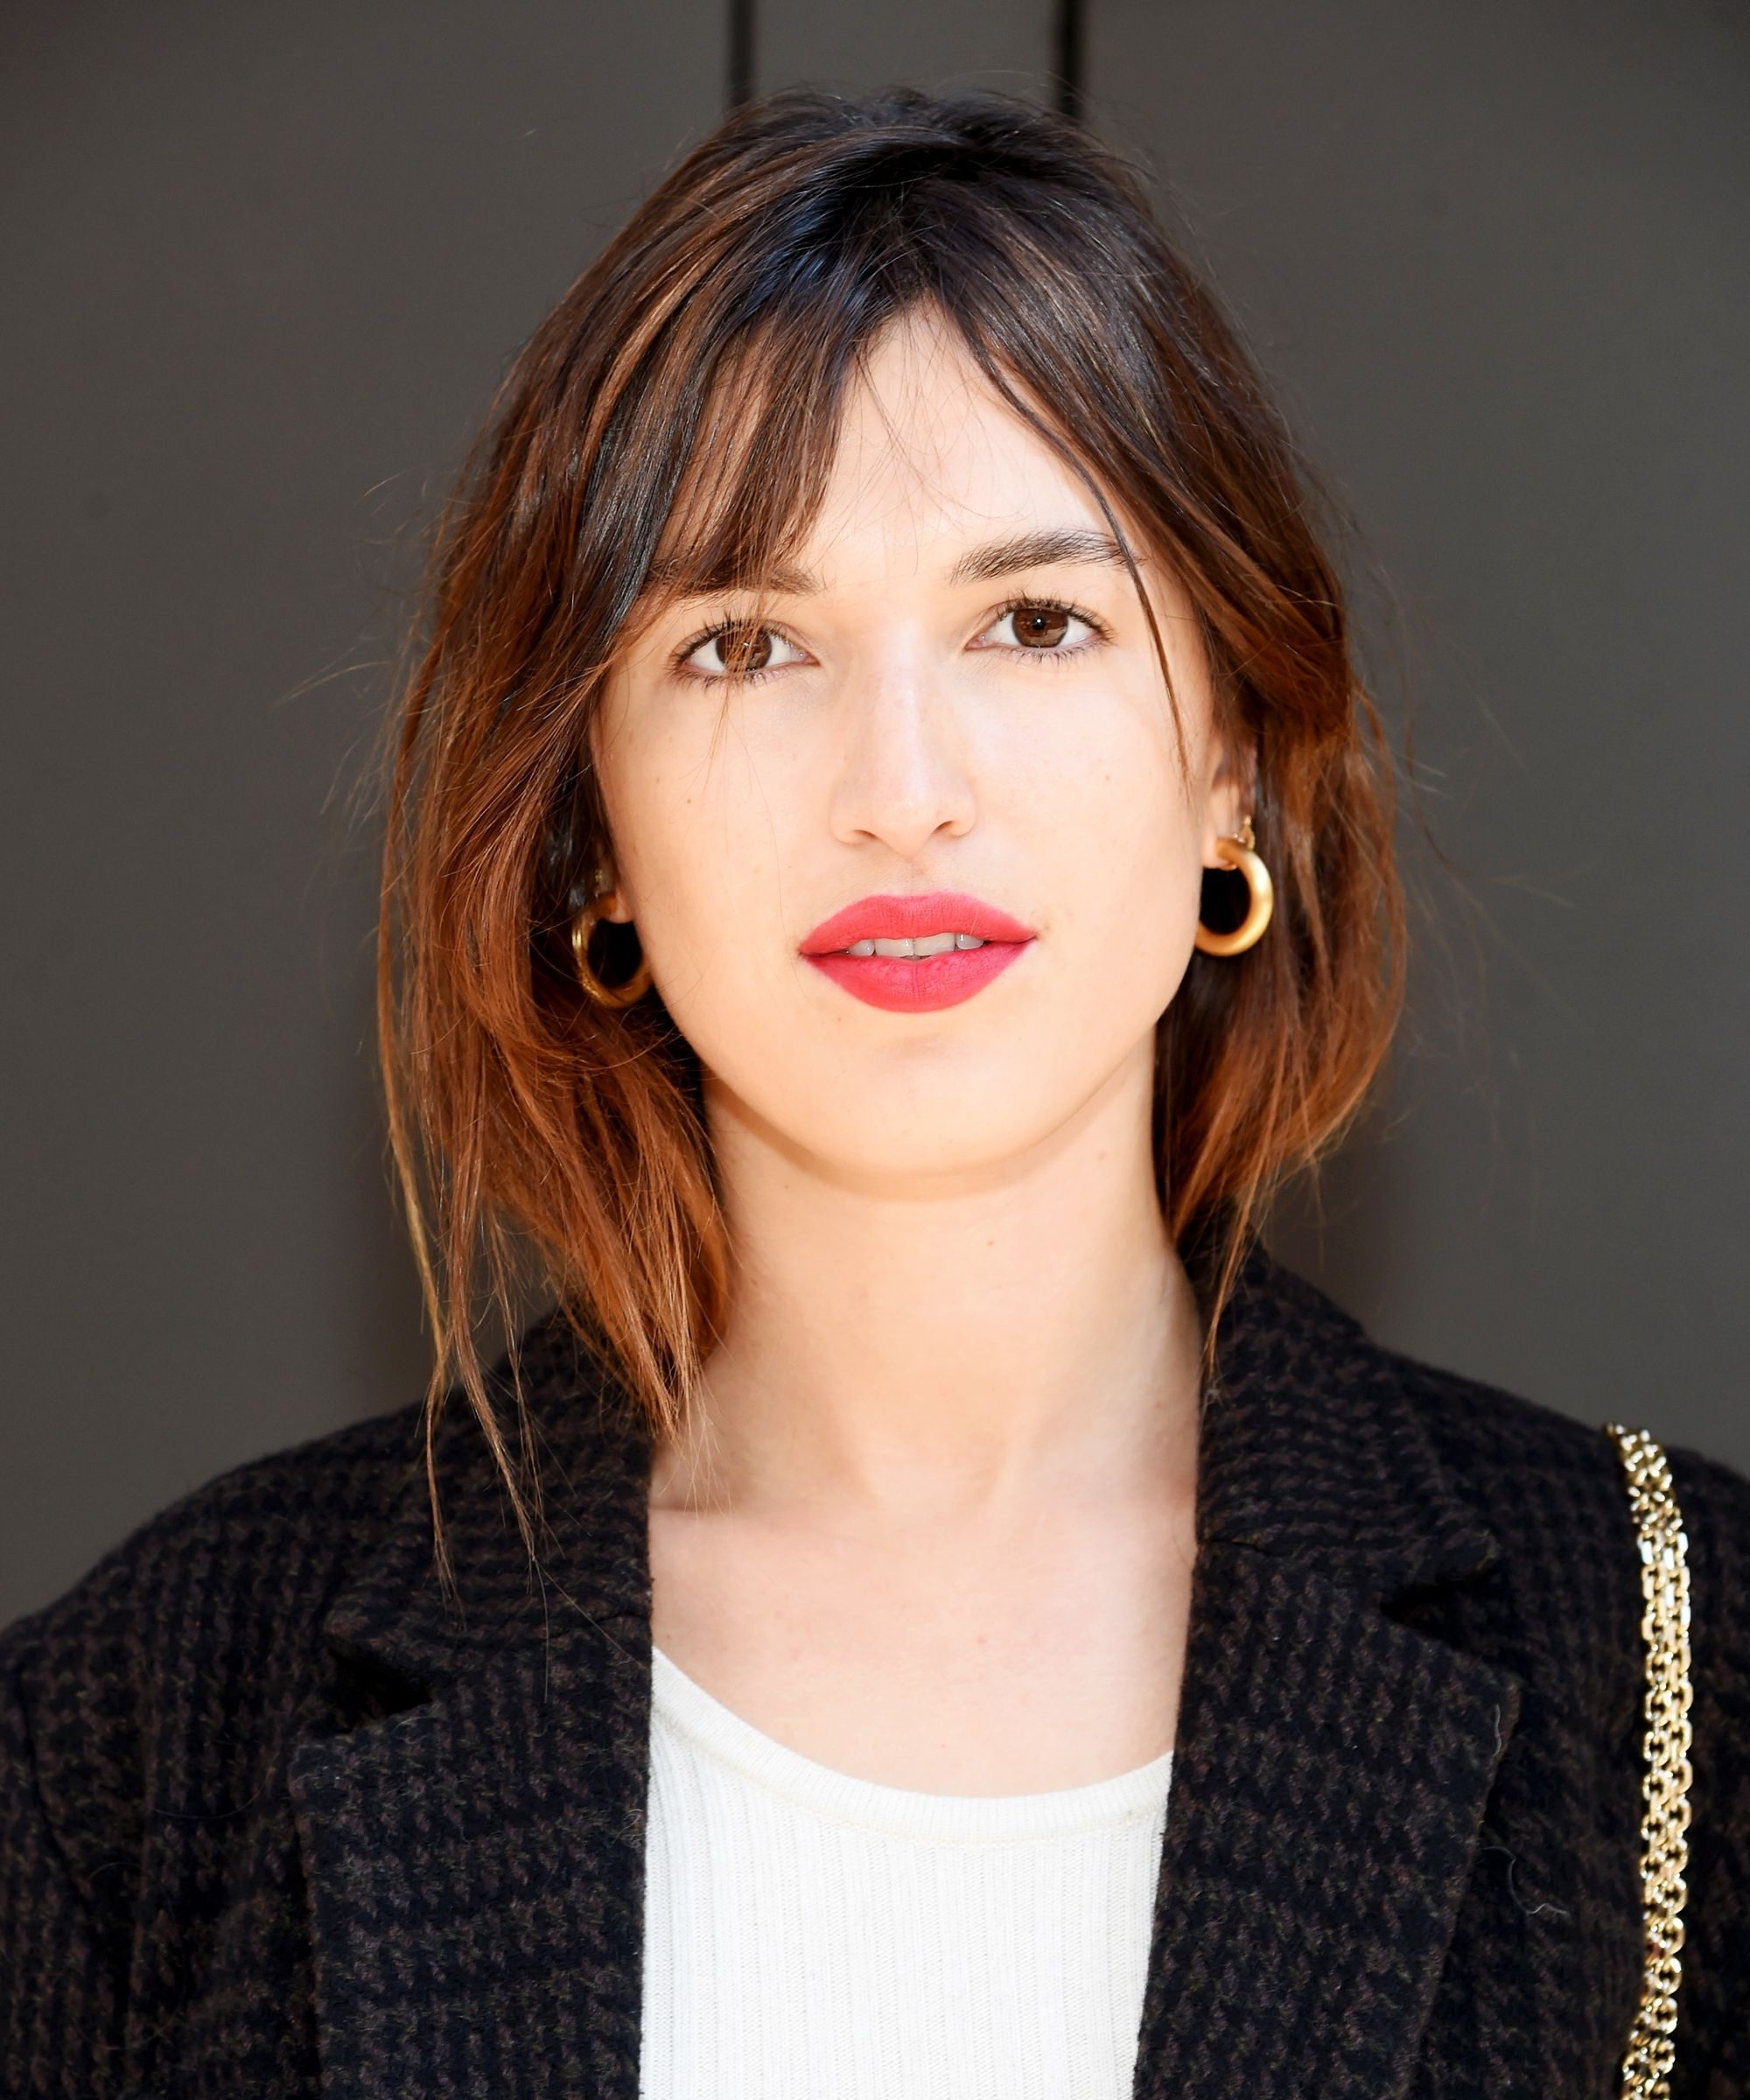 2018 Popular International Hair Trends Haircuts Photos Within Current Weaved Polished Pony Hairstyles With Blunt Bangs (View 13 of 20)